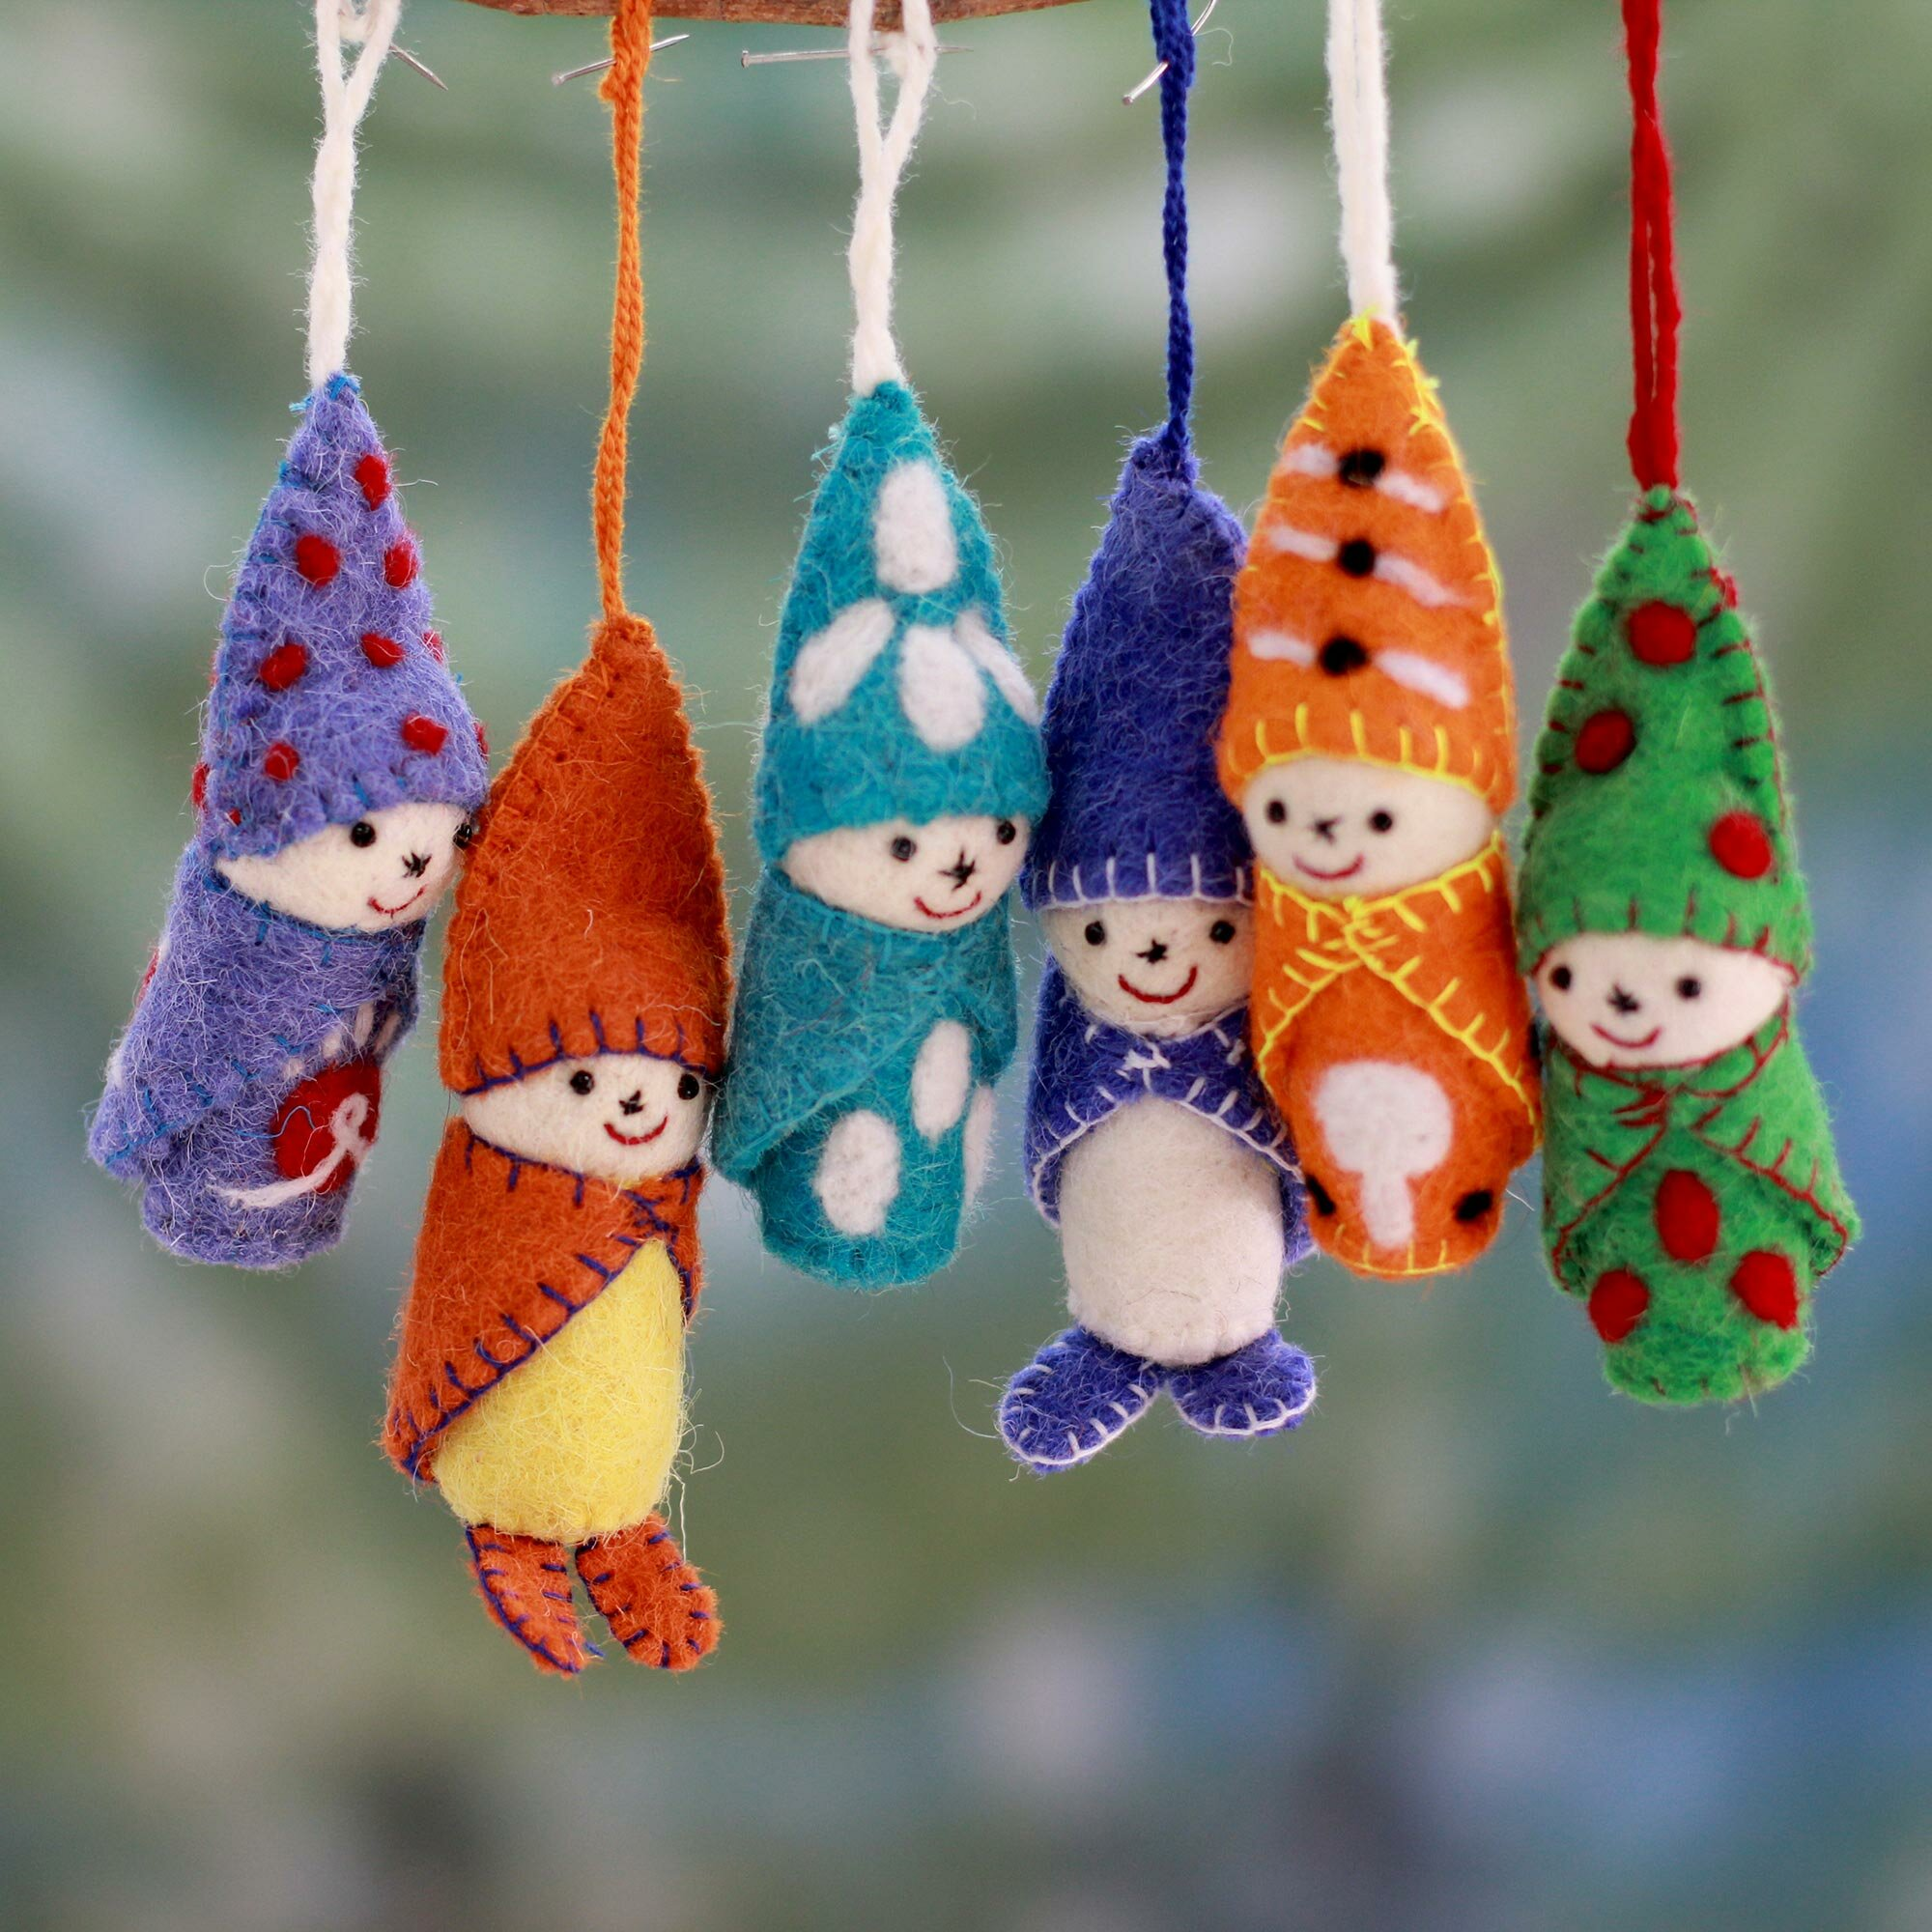 The Holiday Aisle 6 Piece Handmade Hanging Figurine Ornament Set Reviews Wayfair